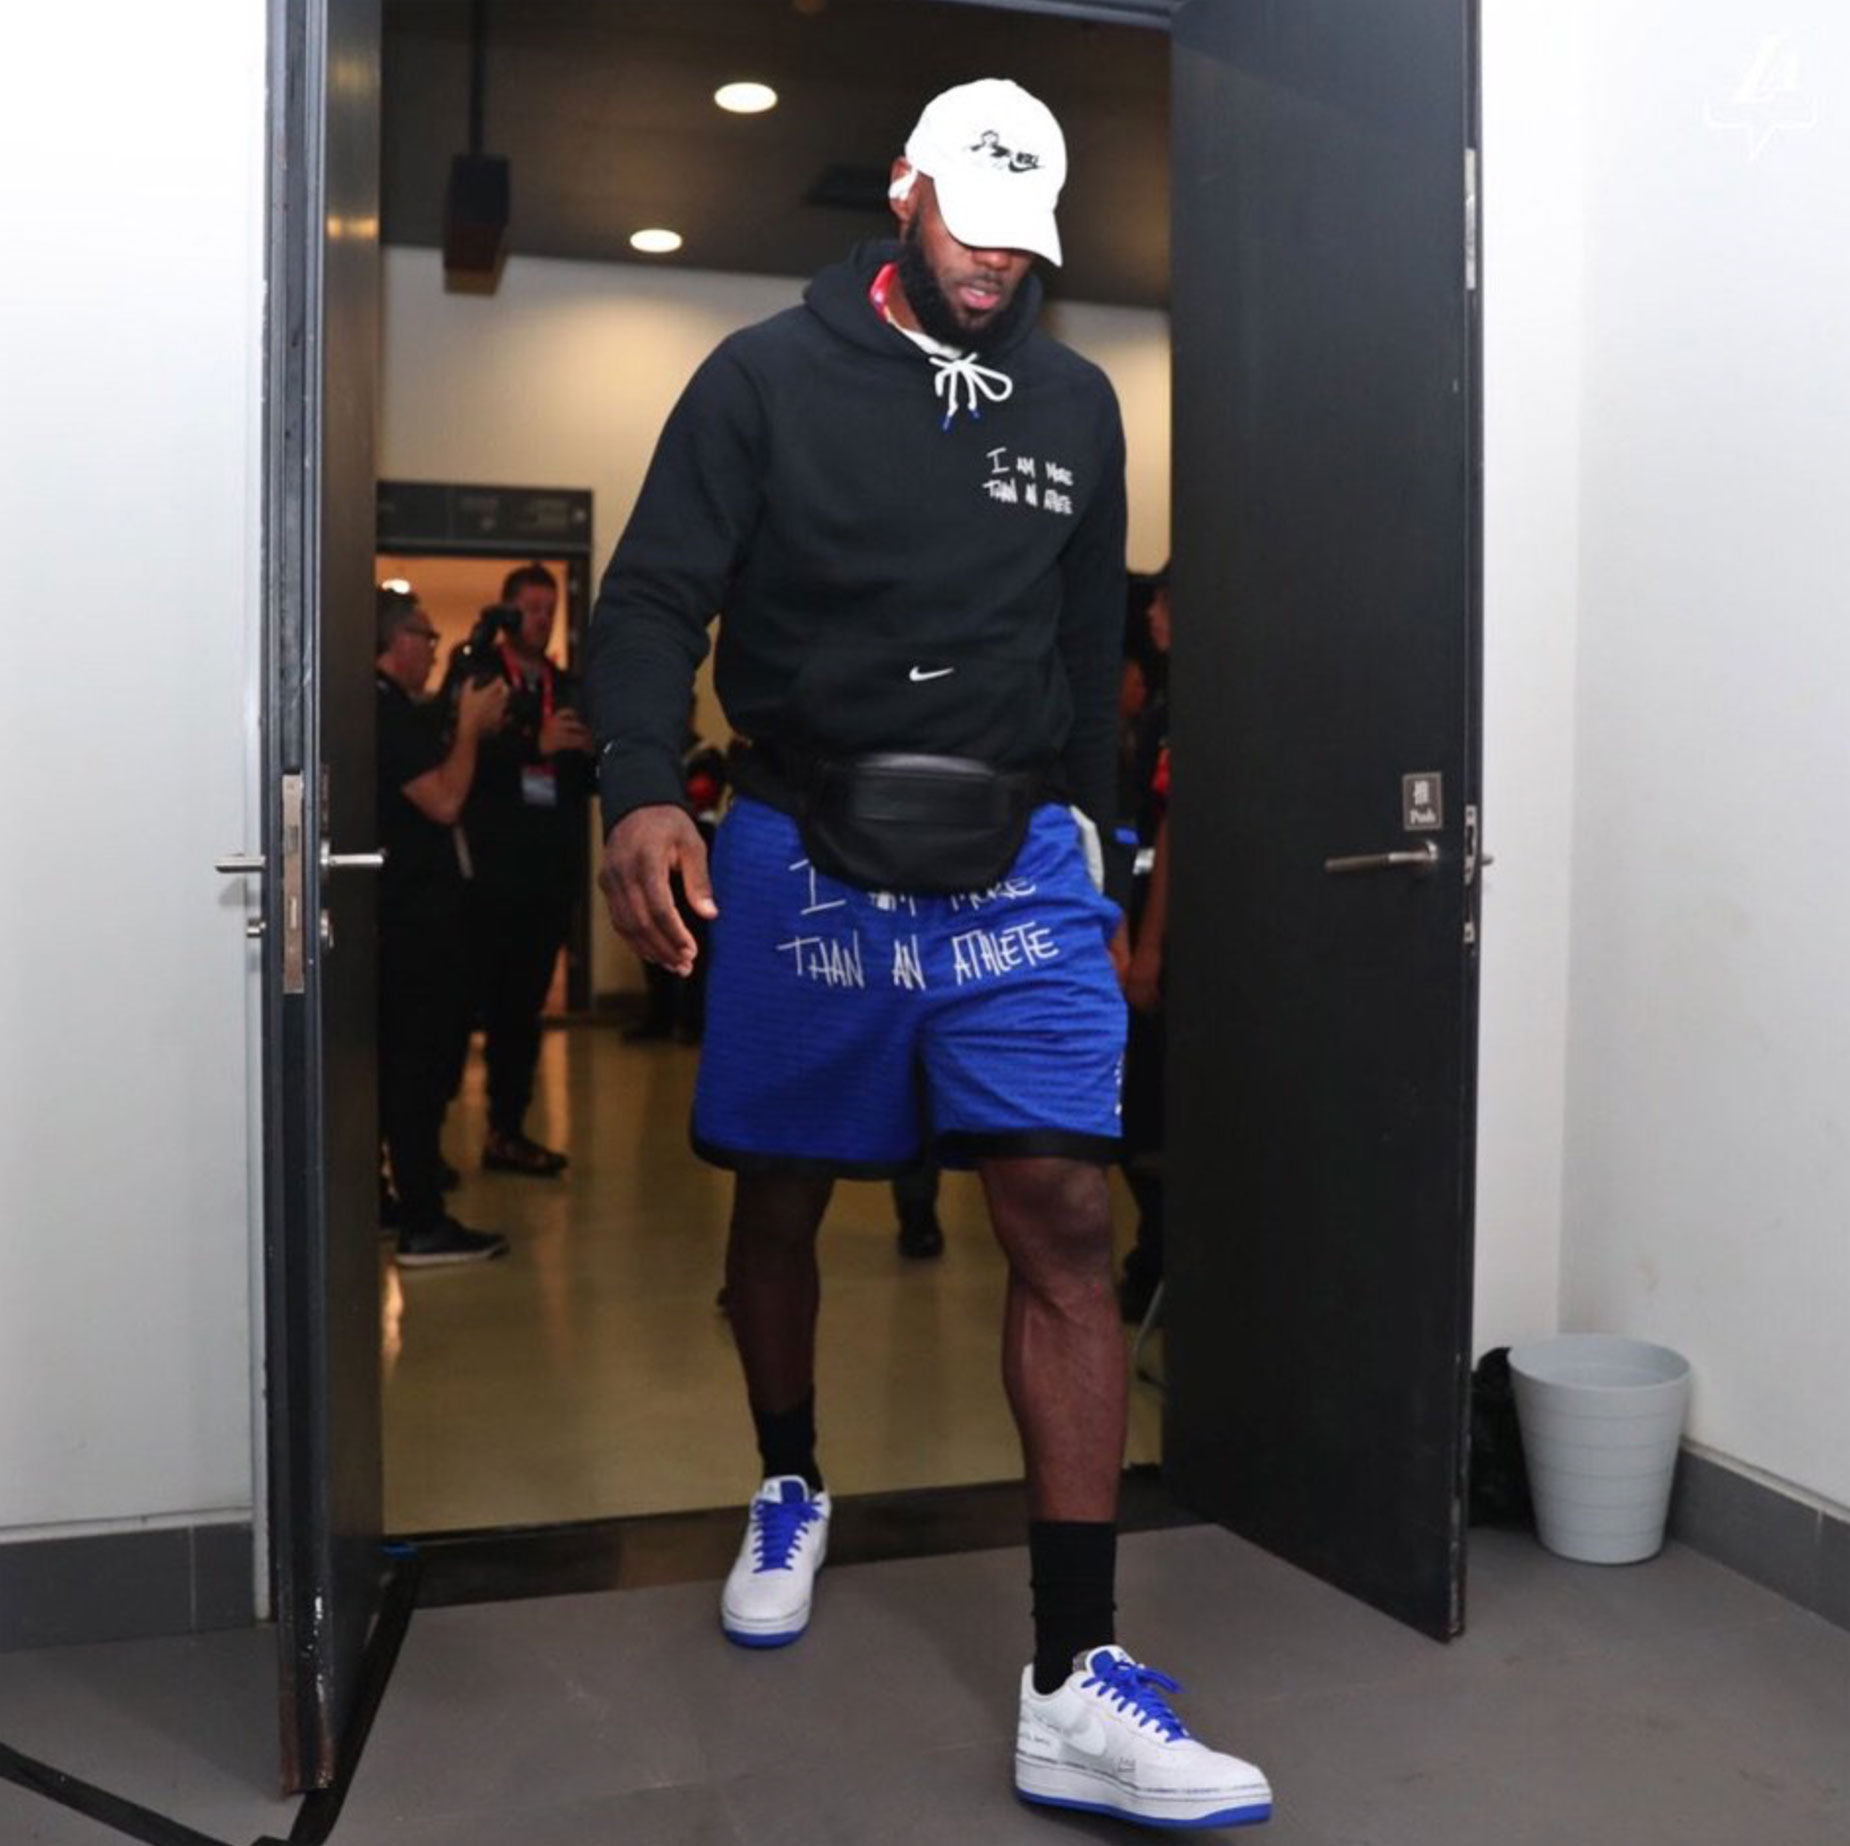 lebron-james-wearing-uninterrupted-nike-more-than-an-athlete-apparel